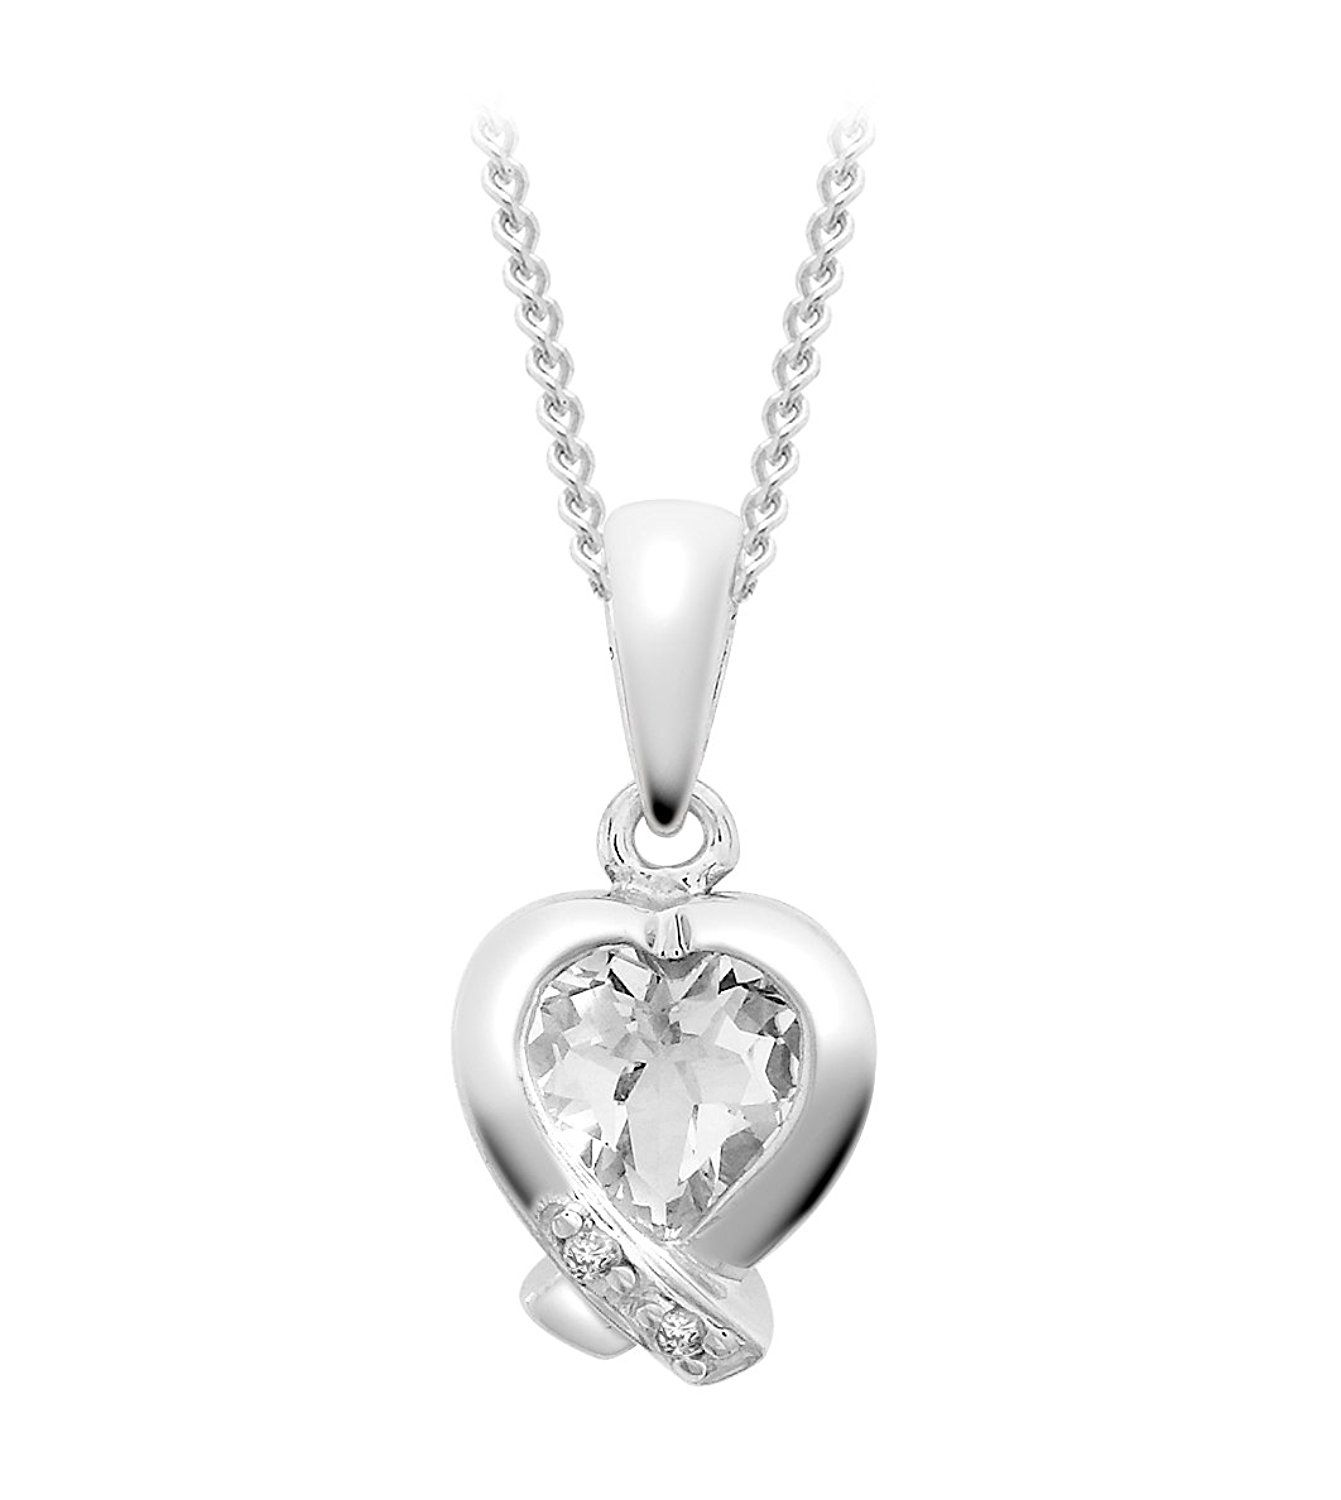 Carissima Gold Women's 9 ct White Gold Diamond Pave Set Round Pendant on Curb Chain Necklace of Length 46 cm t8KCIrV3ao